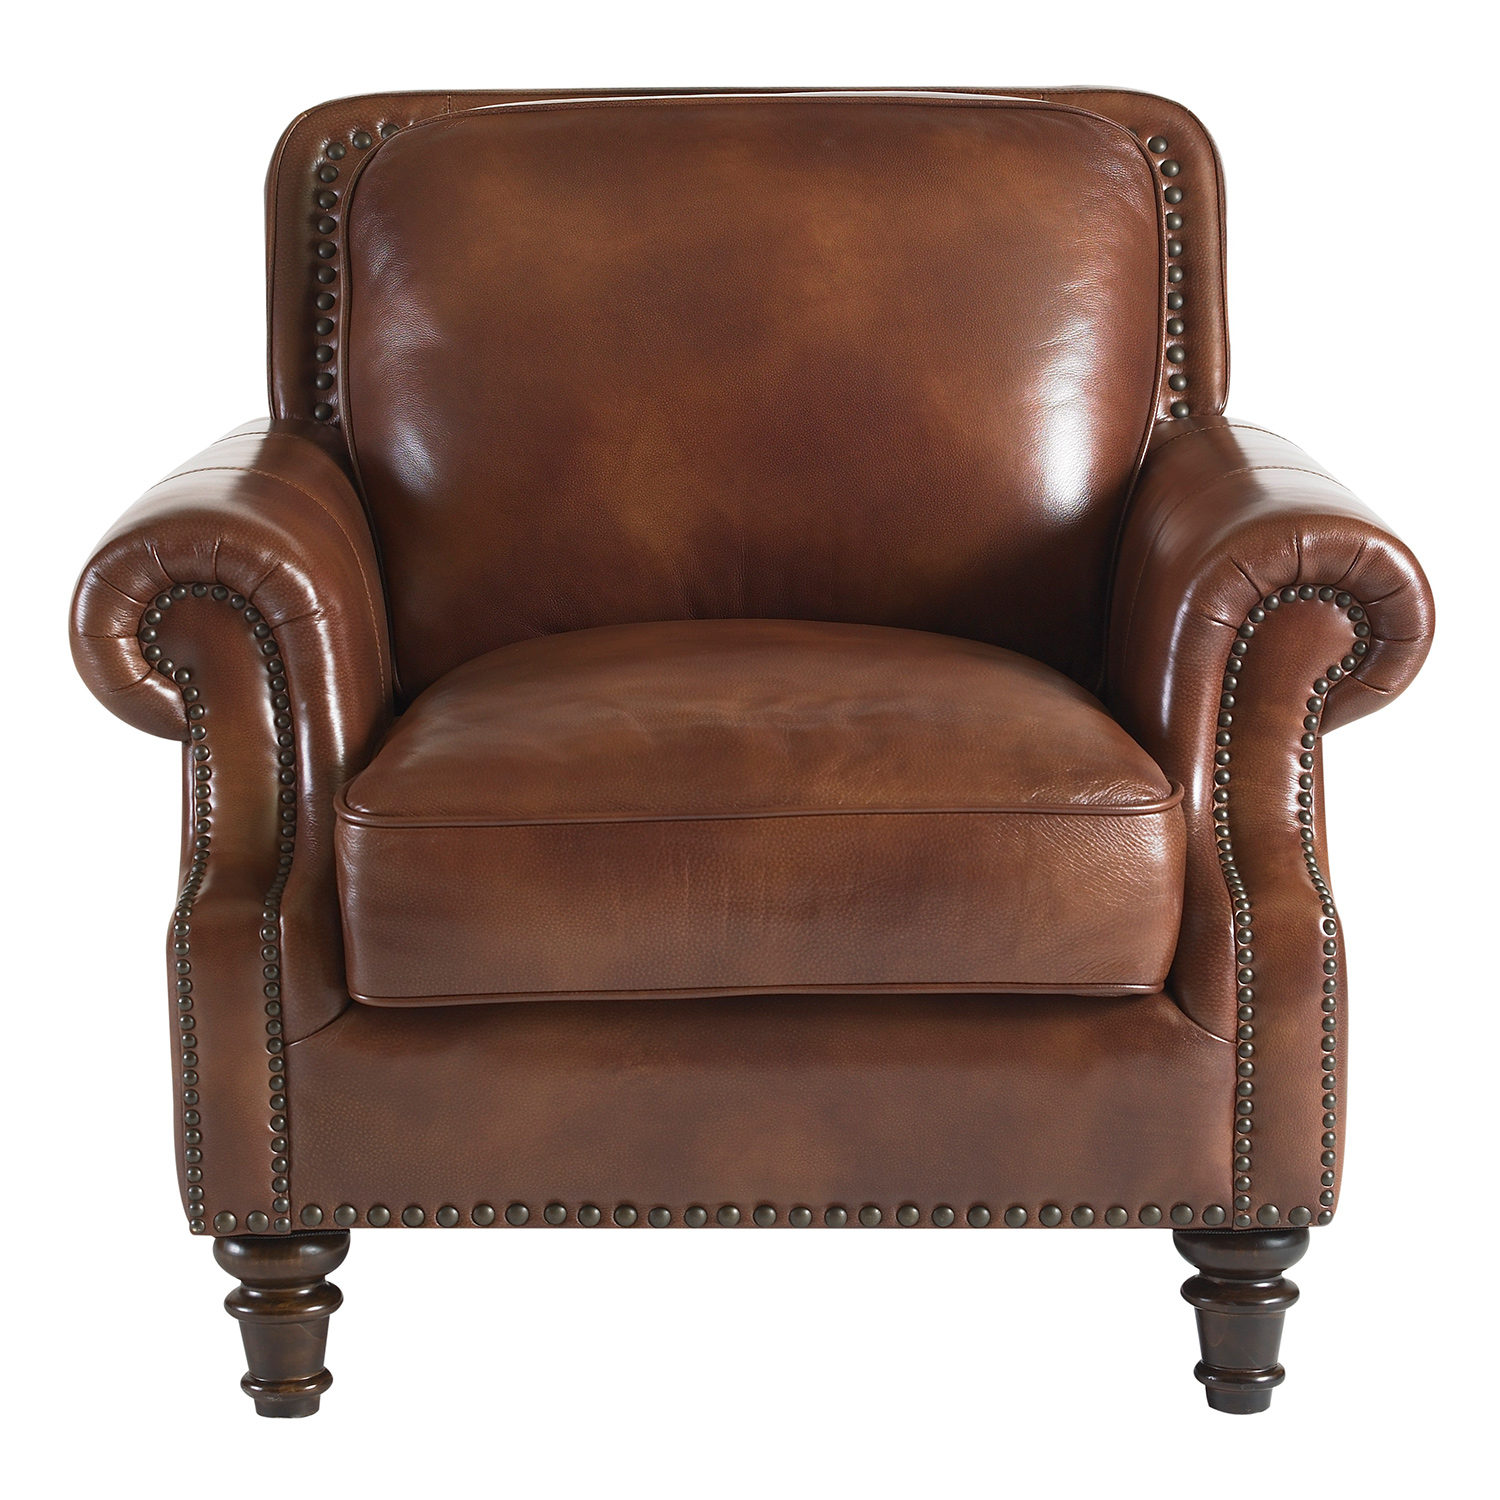 Rustic Leather Chairs Wellington Arm Chair In Rustic Savauge Multi Tone Top Grain Leather By Lazzaro Furniture